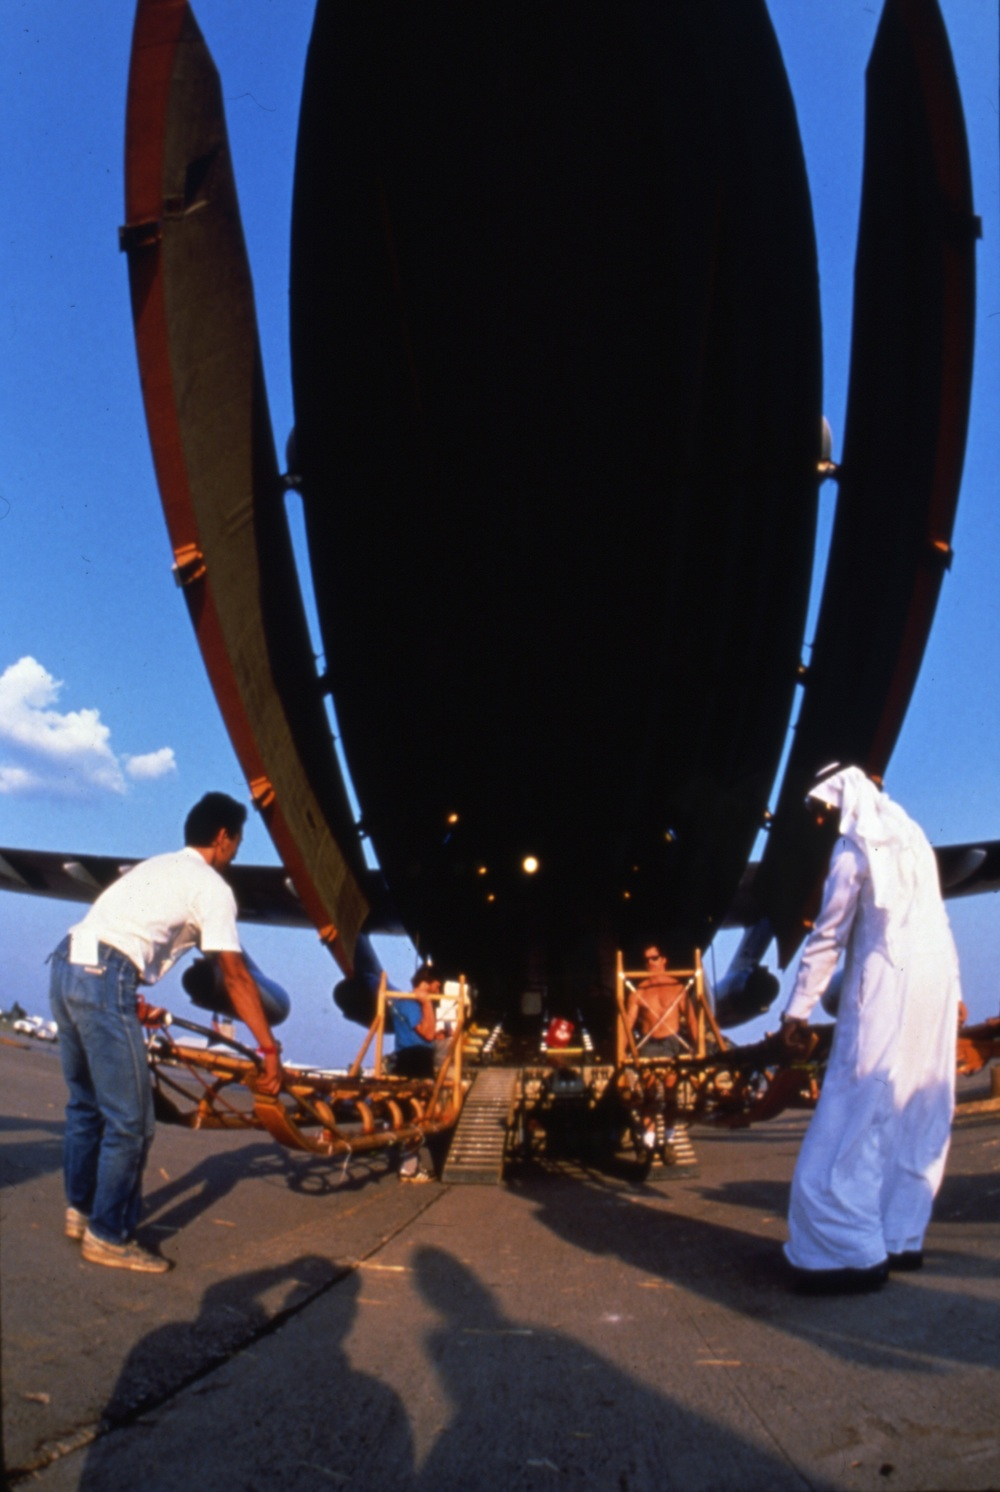 Trans-Antarctica sleds are loaded onto the Soviet's Illyushin 76 in Minneapolis, July 16, 1989. From left, Keizo Funatsu, John Stetson, Ibrahim Alam. Photo © Will Steger.